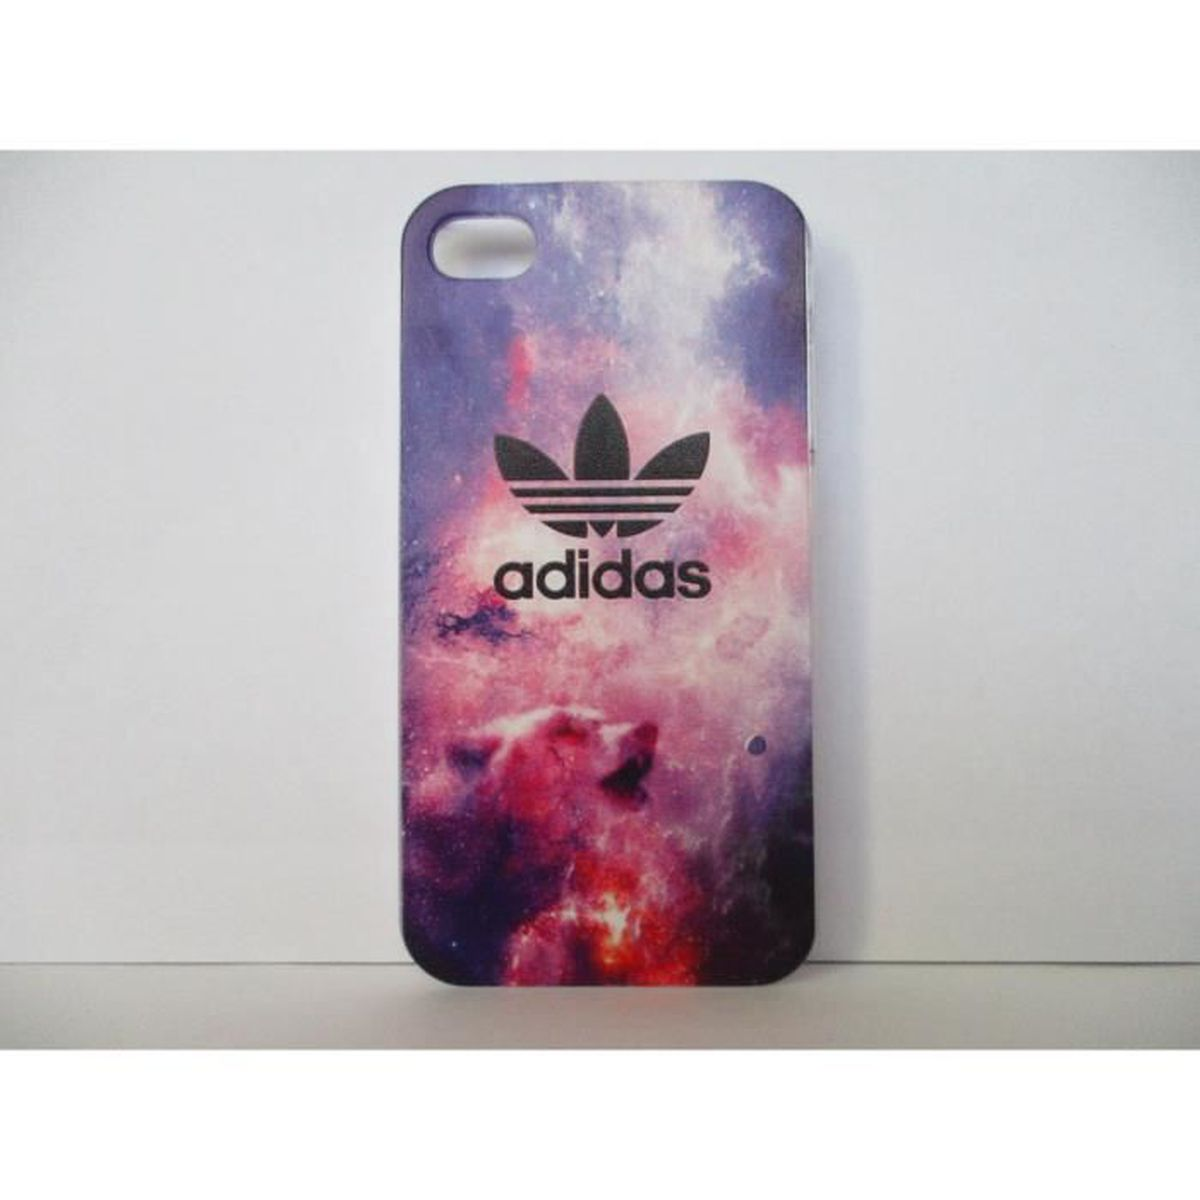 coque adidas iphone 4 4s neuf motif h achat coque. Black Bedroom Furniture Sets. Home Design Ideas